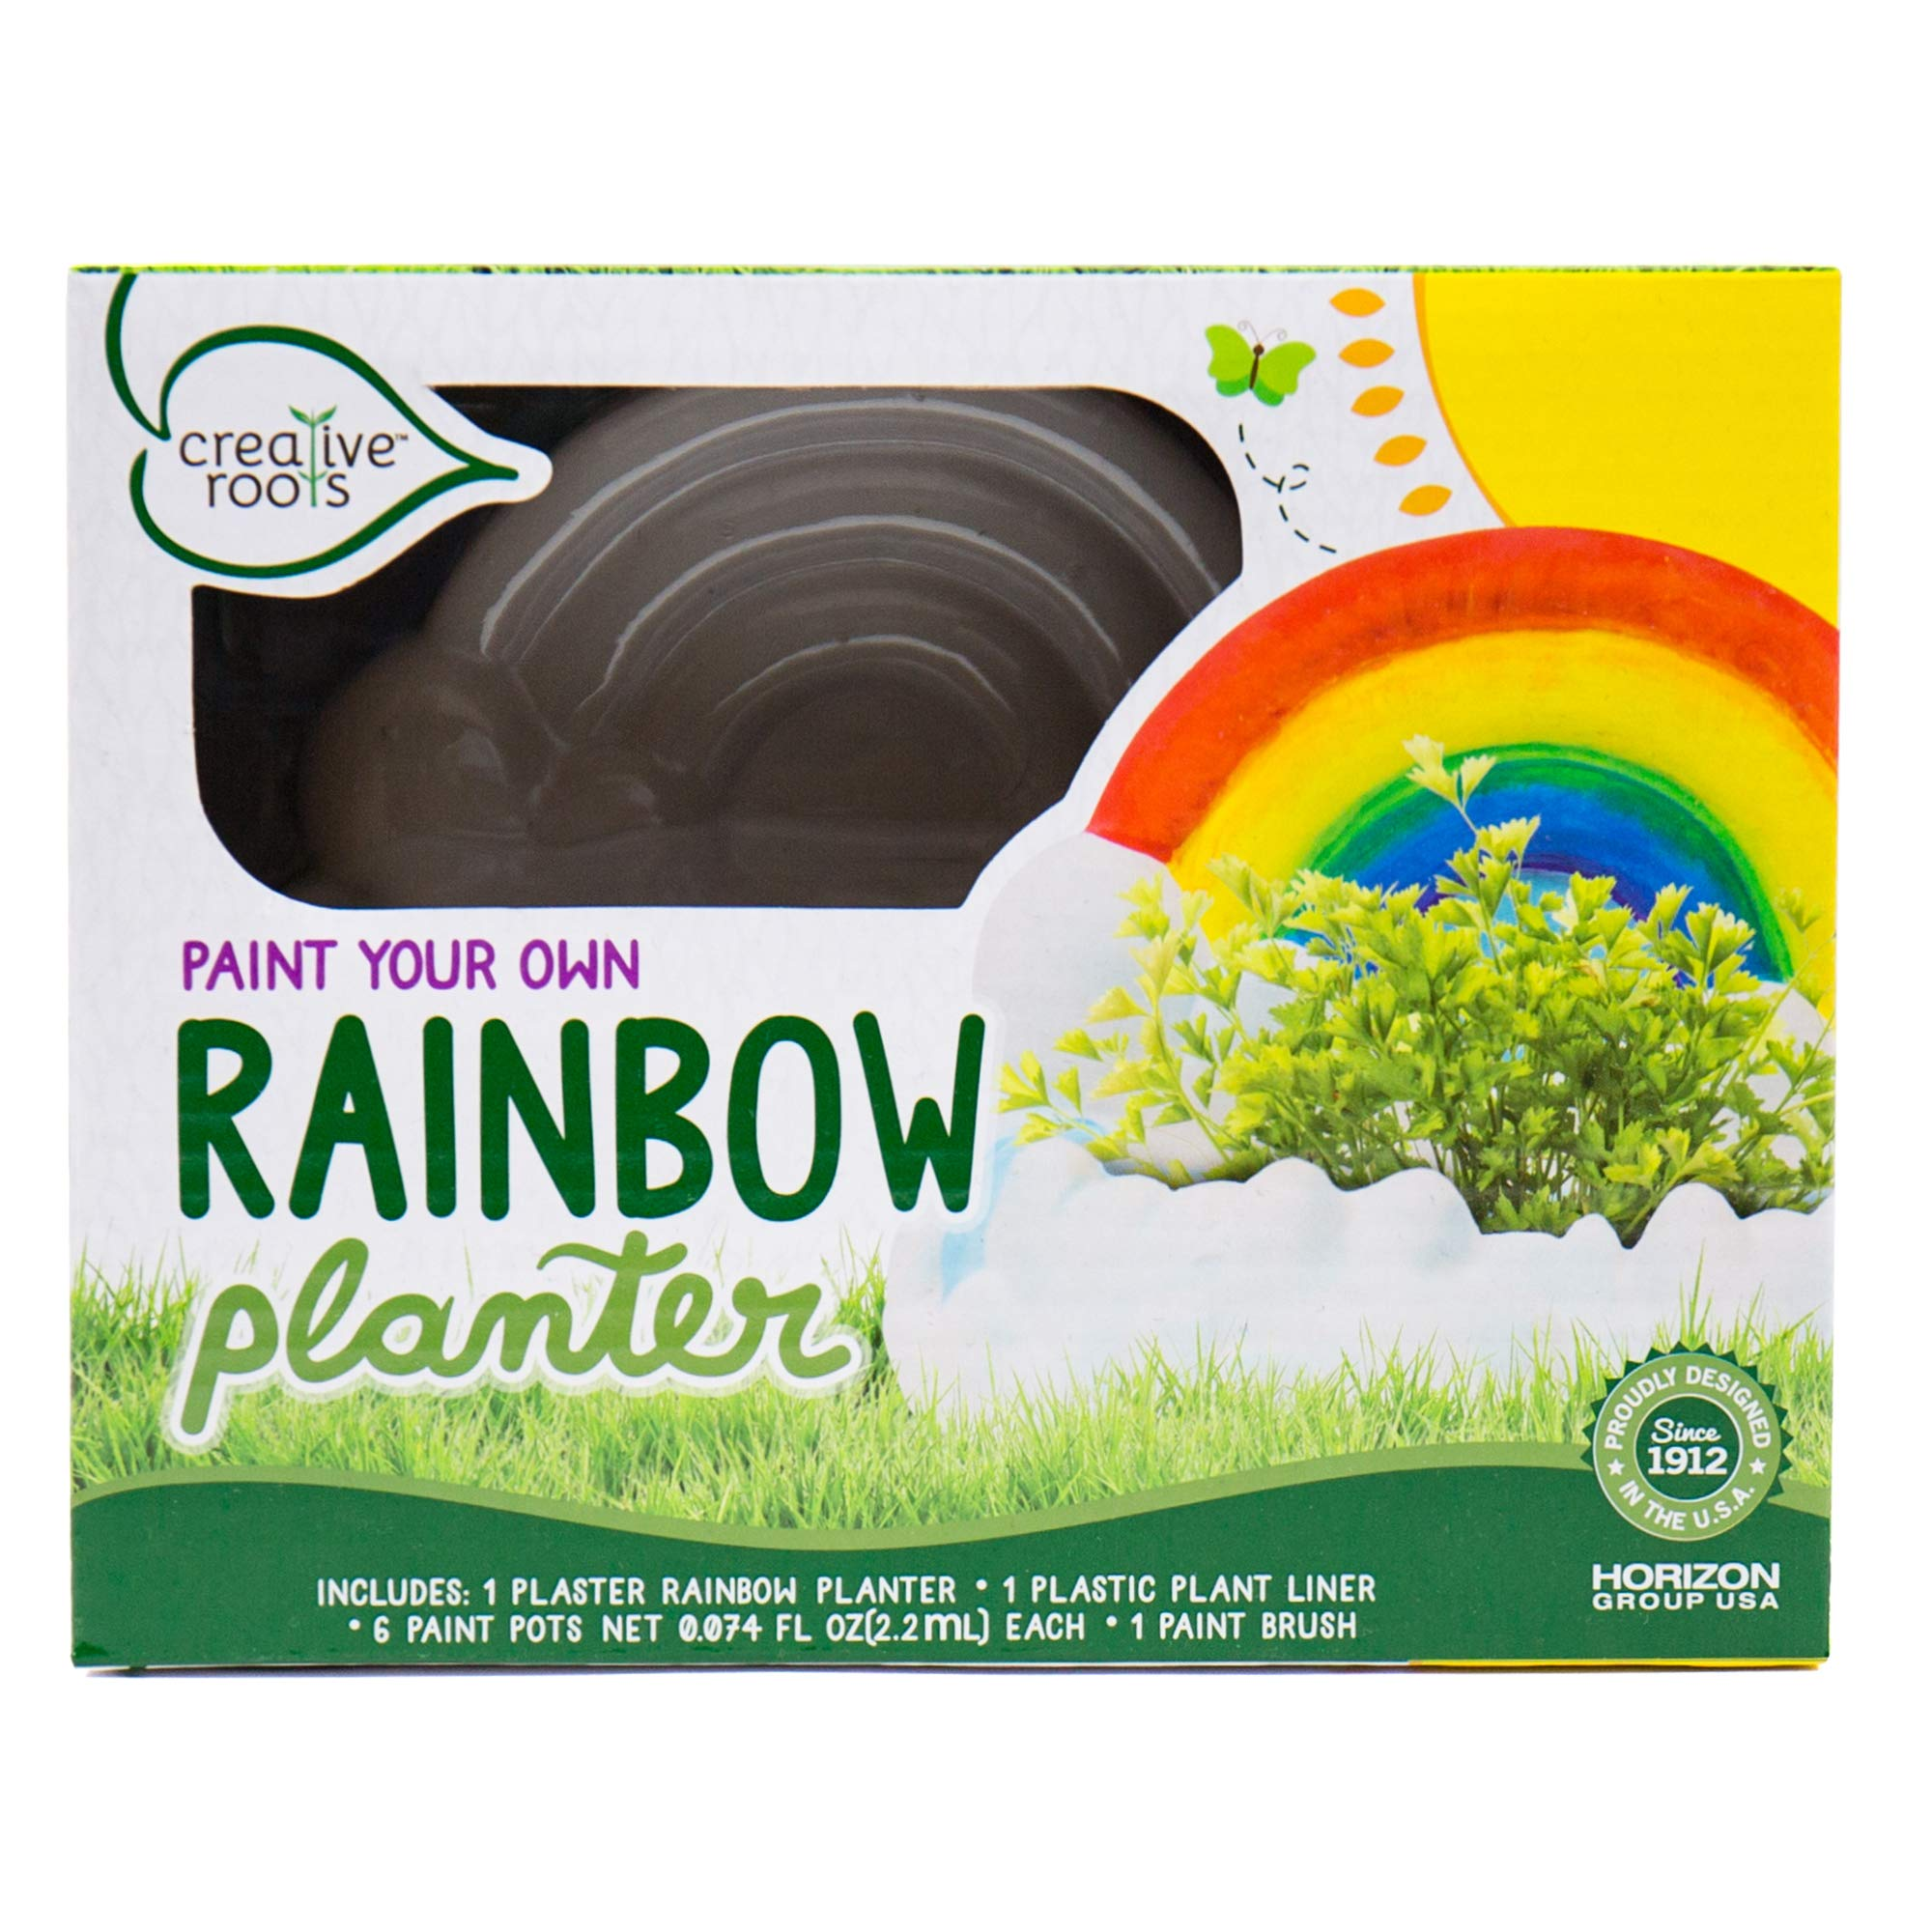 CREATIVE ROOTS Paint Your Own Rainbow Planter by Horizon Group USA Toy